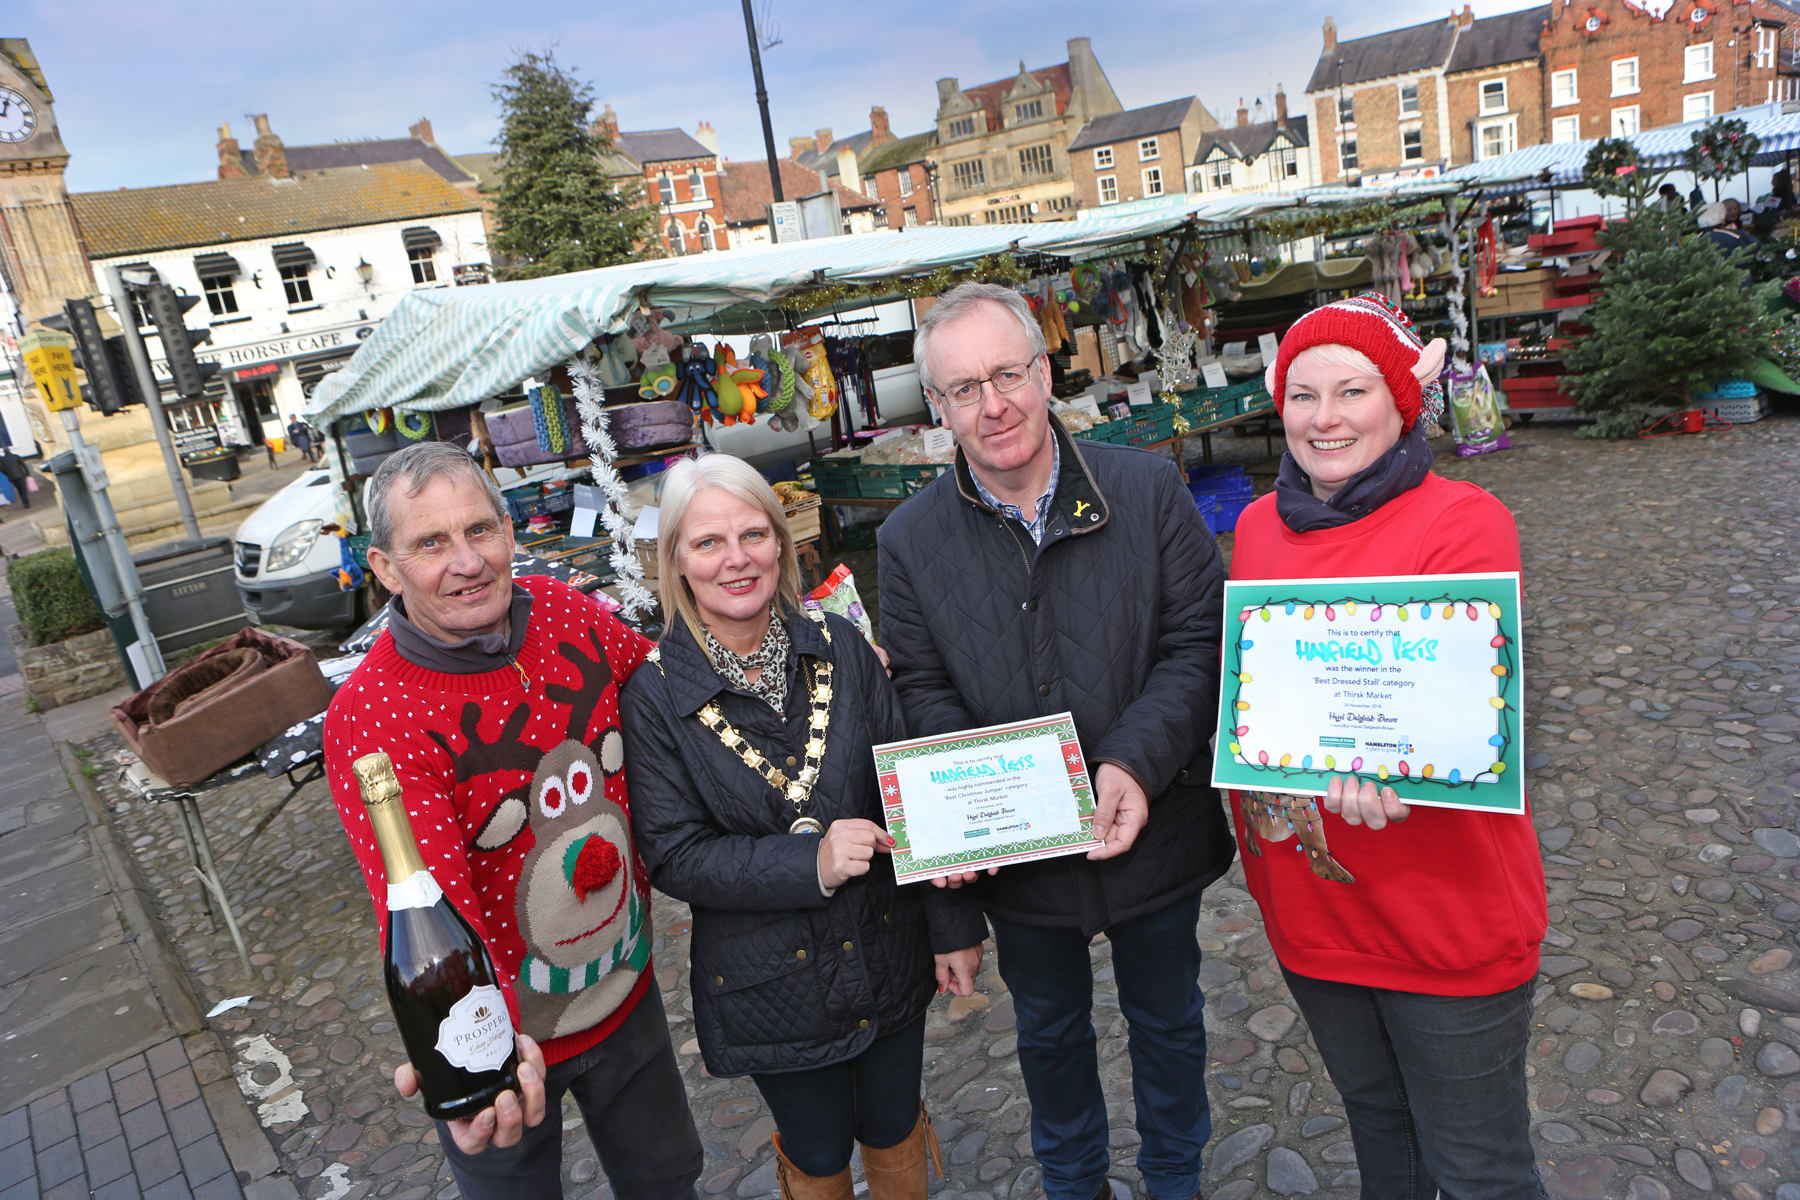 FESTIVE: Phil and Natalie Ibbitson from Hadfield Pets with Mayor of Thirsk, Cllr Hazel Dalgleish-Brown and leader of Hambleton District Council, Cllr Mark Robson